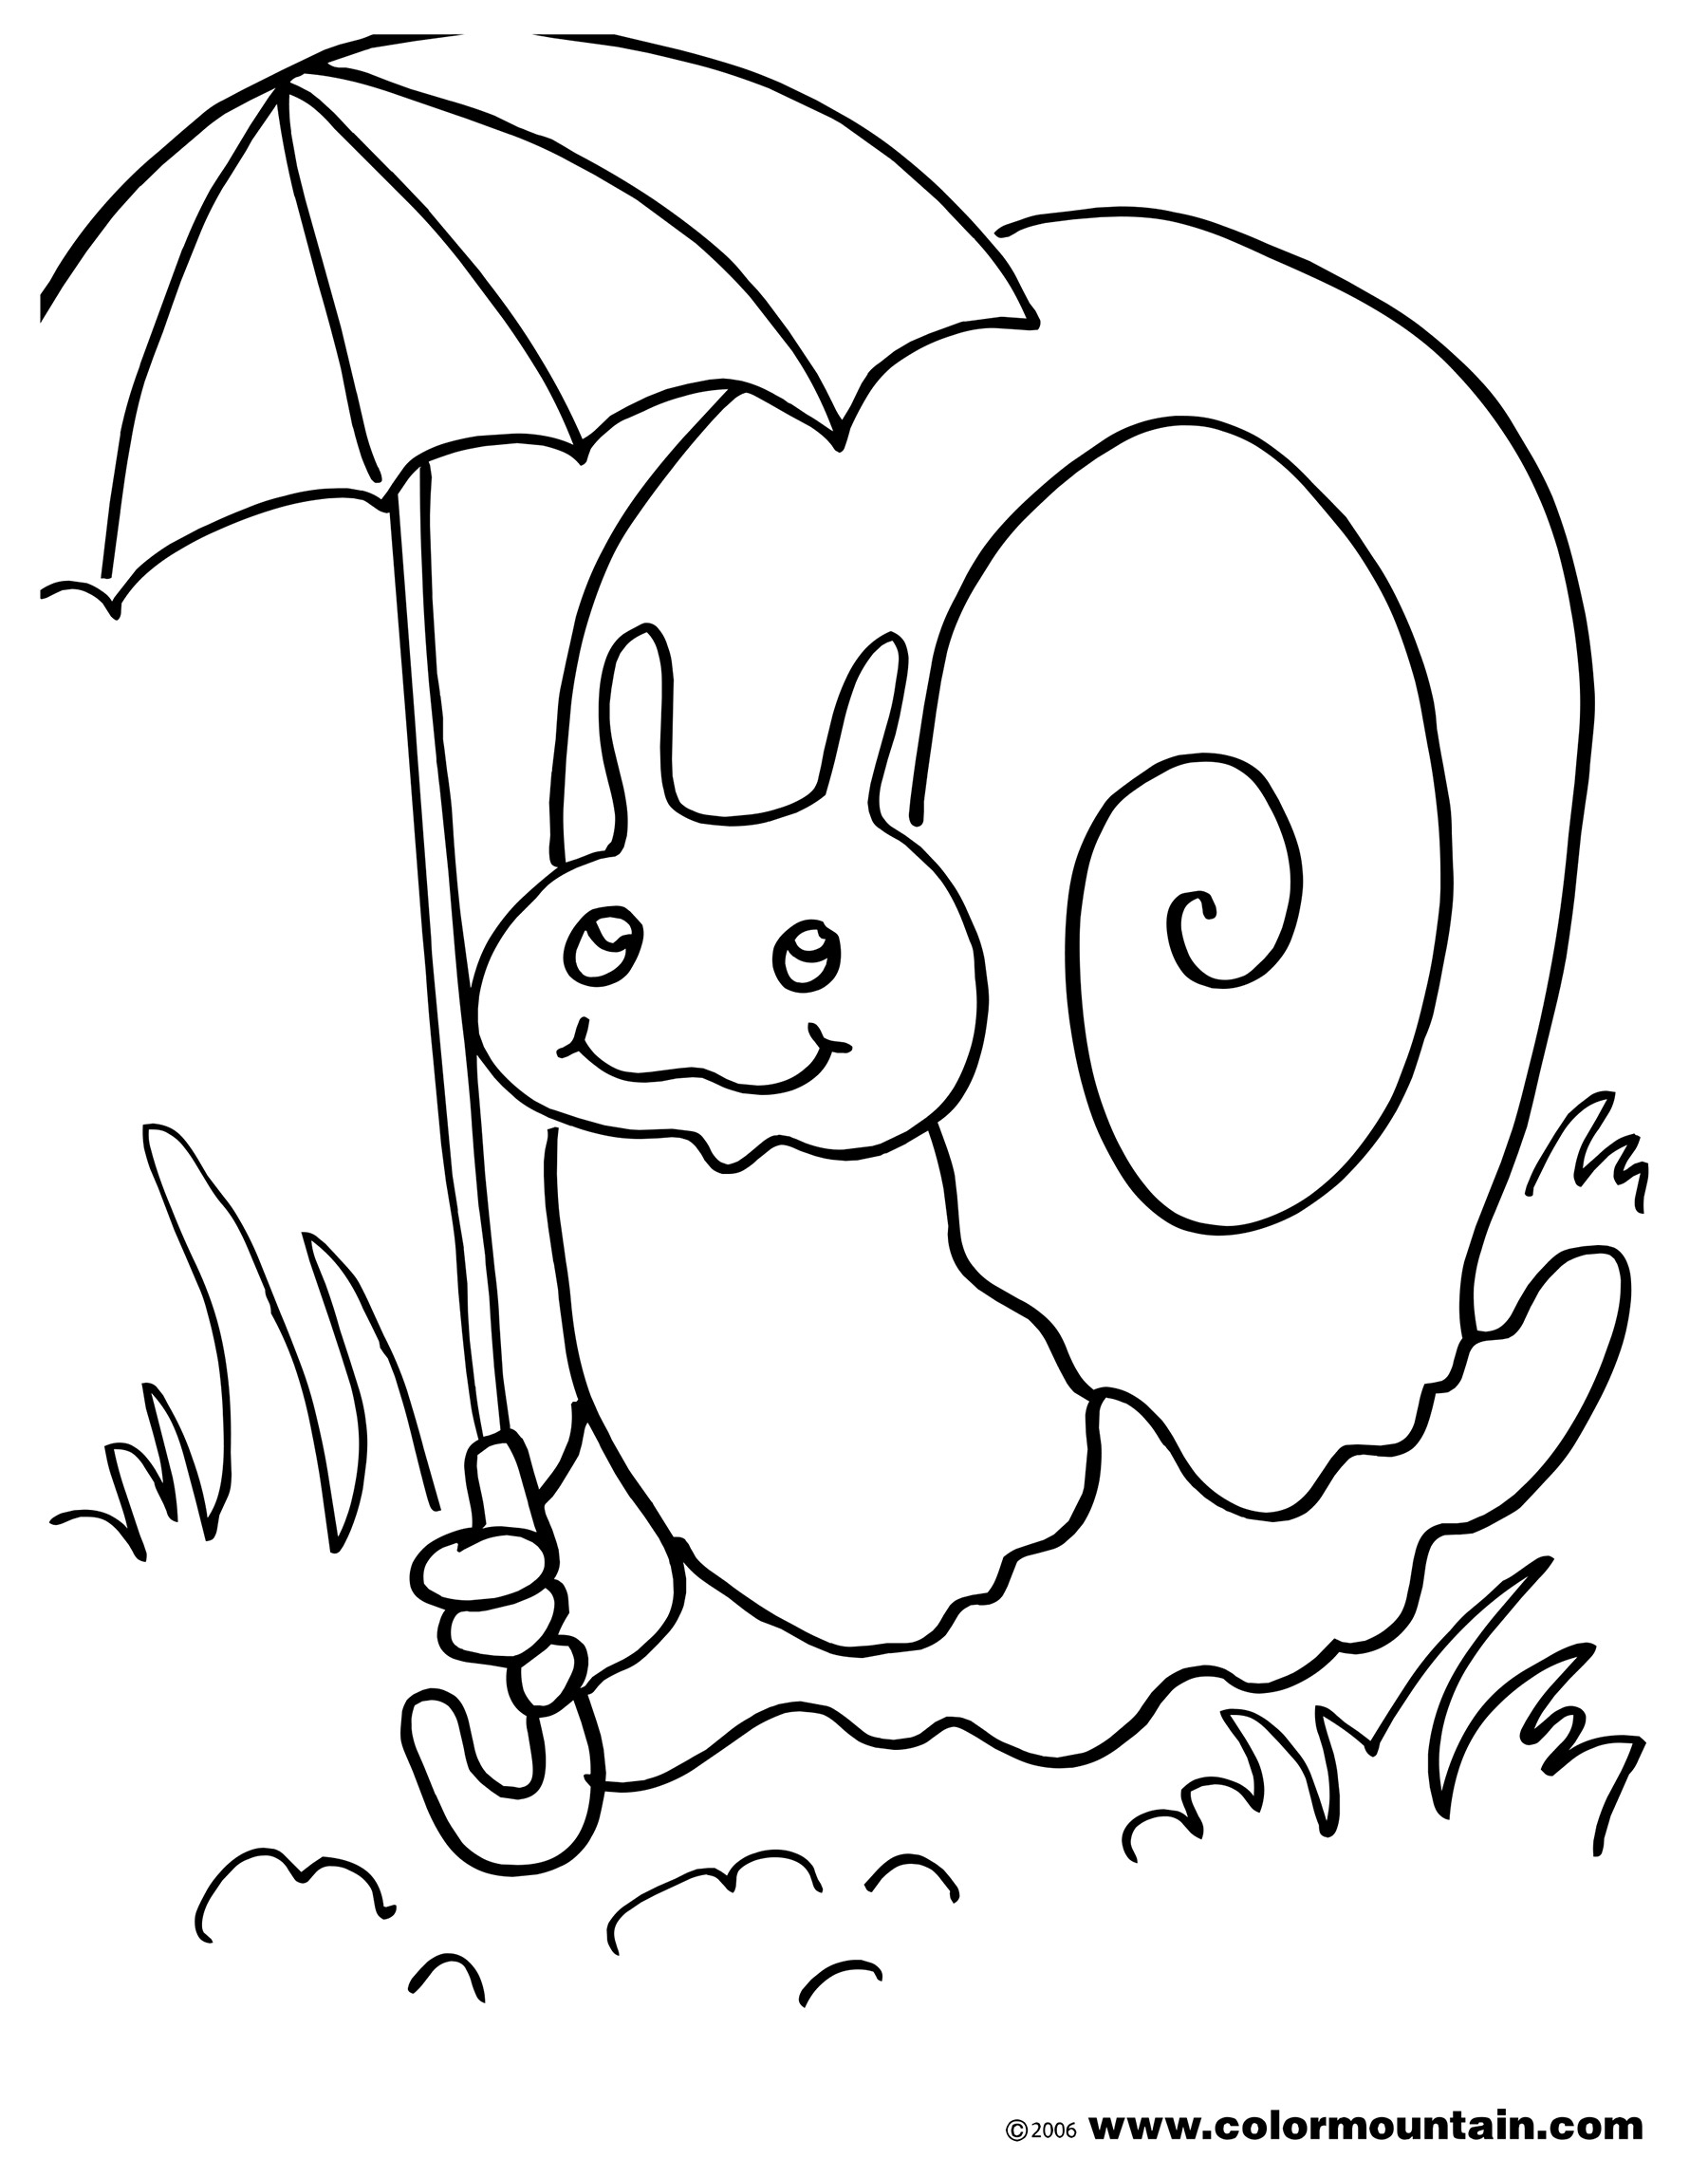 snail coloring page simple snail drawing at getdrawings free download page snail coloring